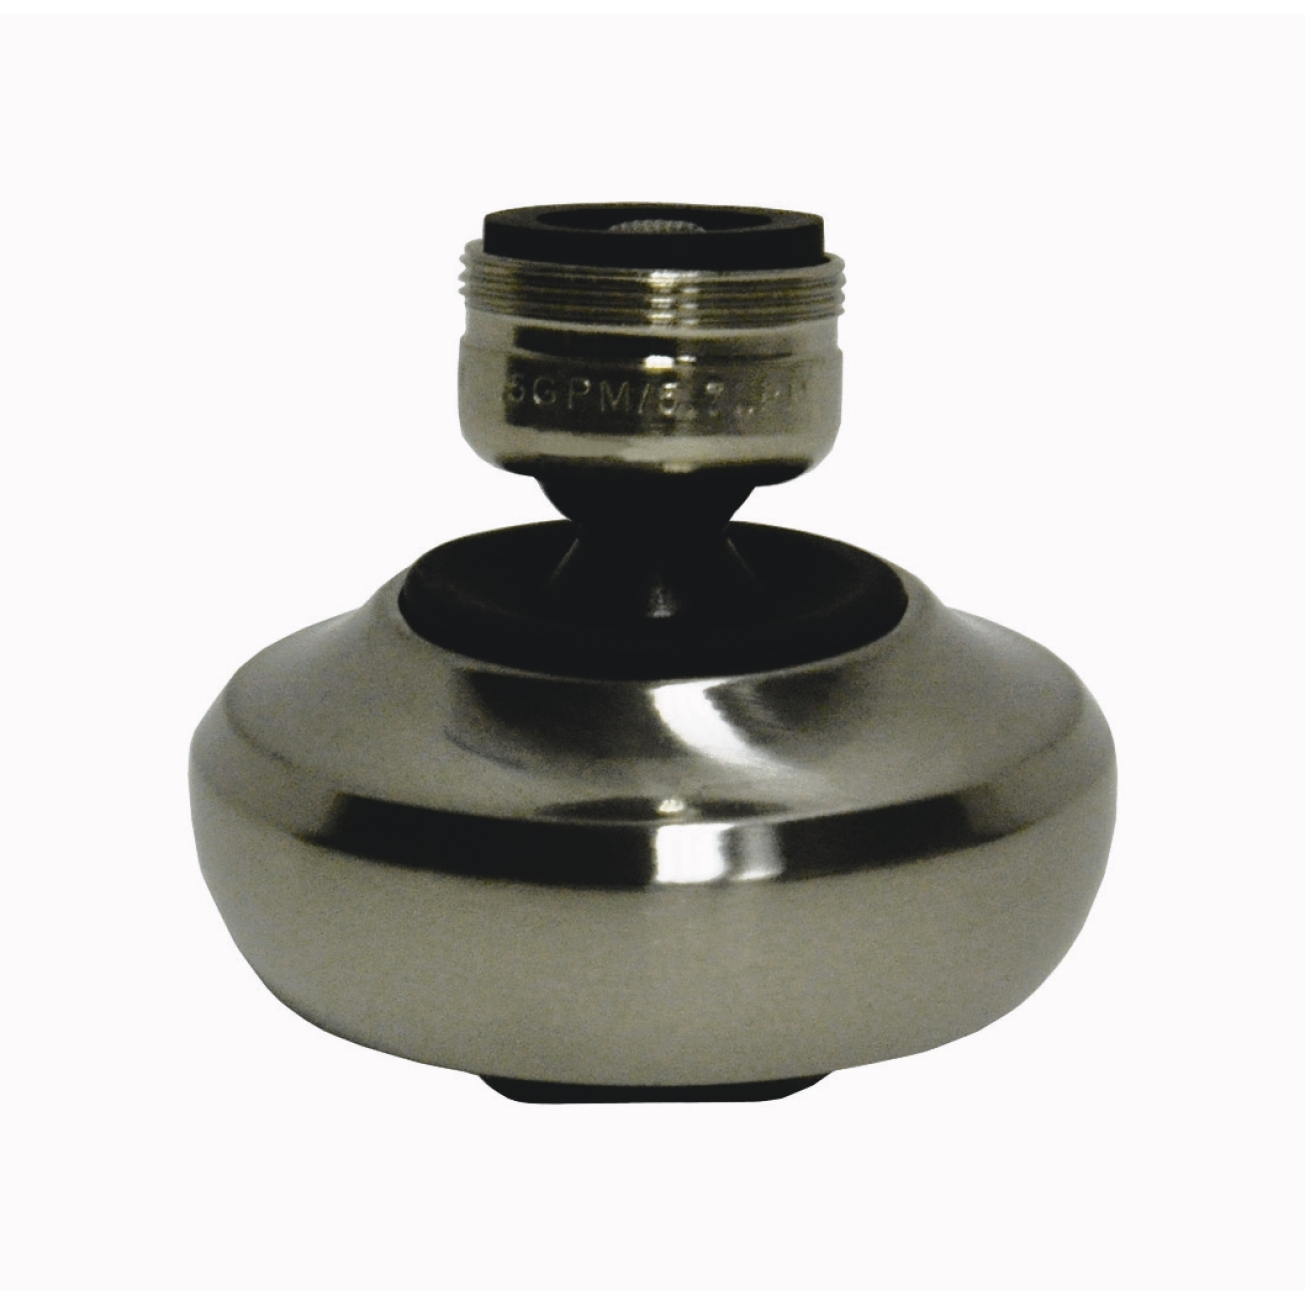 Ideas, kitchen sink and faucet aerators at ace hardware with regard to sizing 1305 x 1305  .